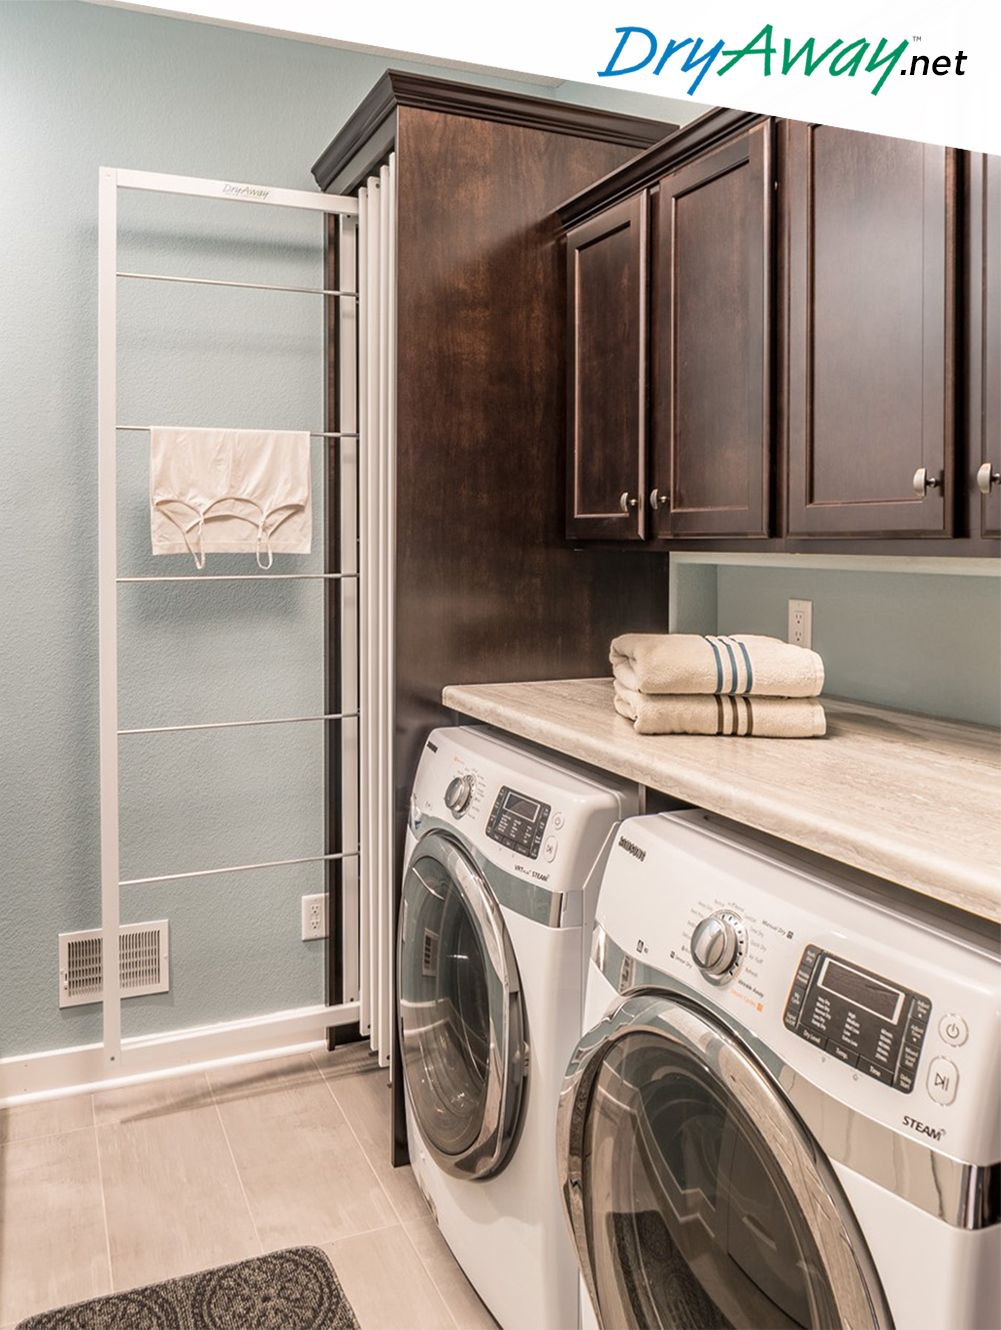 Eco Friendly Built In Laundry Room Clothes Drying Racks Dryaway Laundry Room Remodel Laundry Room Design Laundry Room Diy